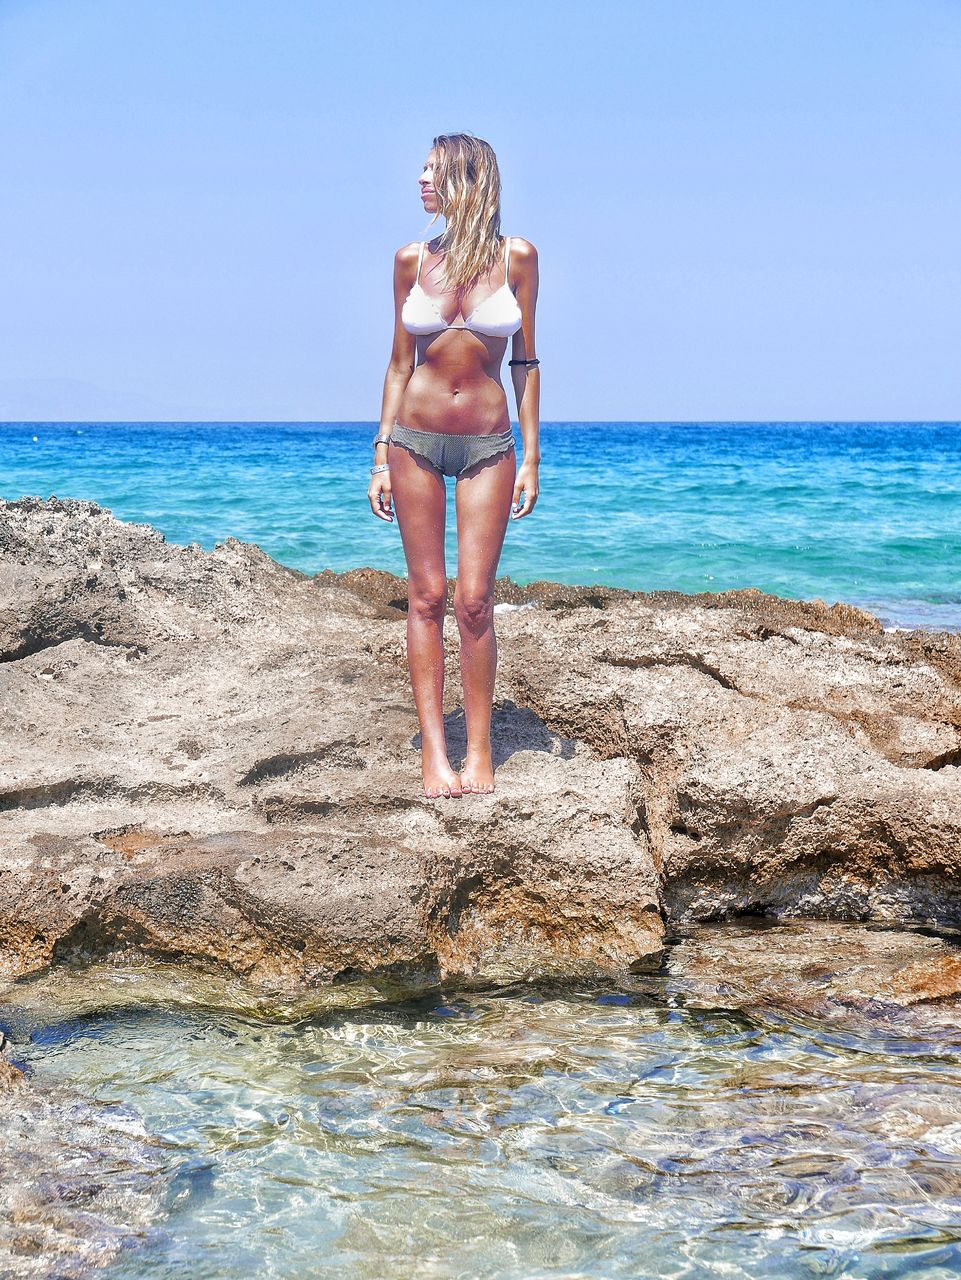 sea, young adult, young women, bikini, real people, one person, leisure activity, water, full length, standing, lifestyles, beach, rear view, nature, horizon over water, day, beautiful woman, outdoors, beauty in nature, clear sky, vacations, sky, scenics, ankle deep in water, blond hair, people